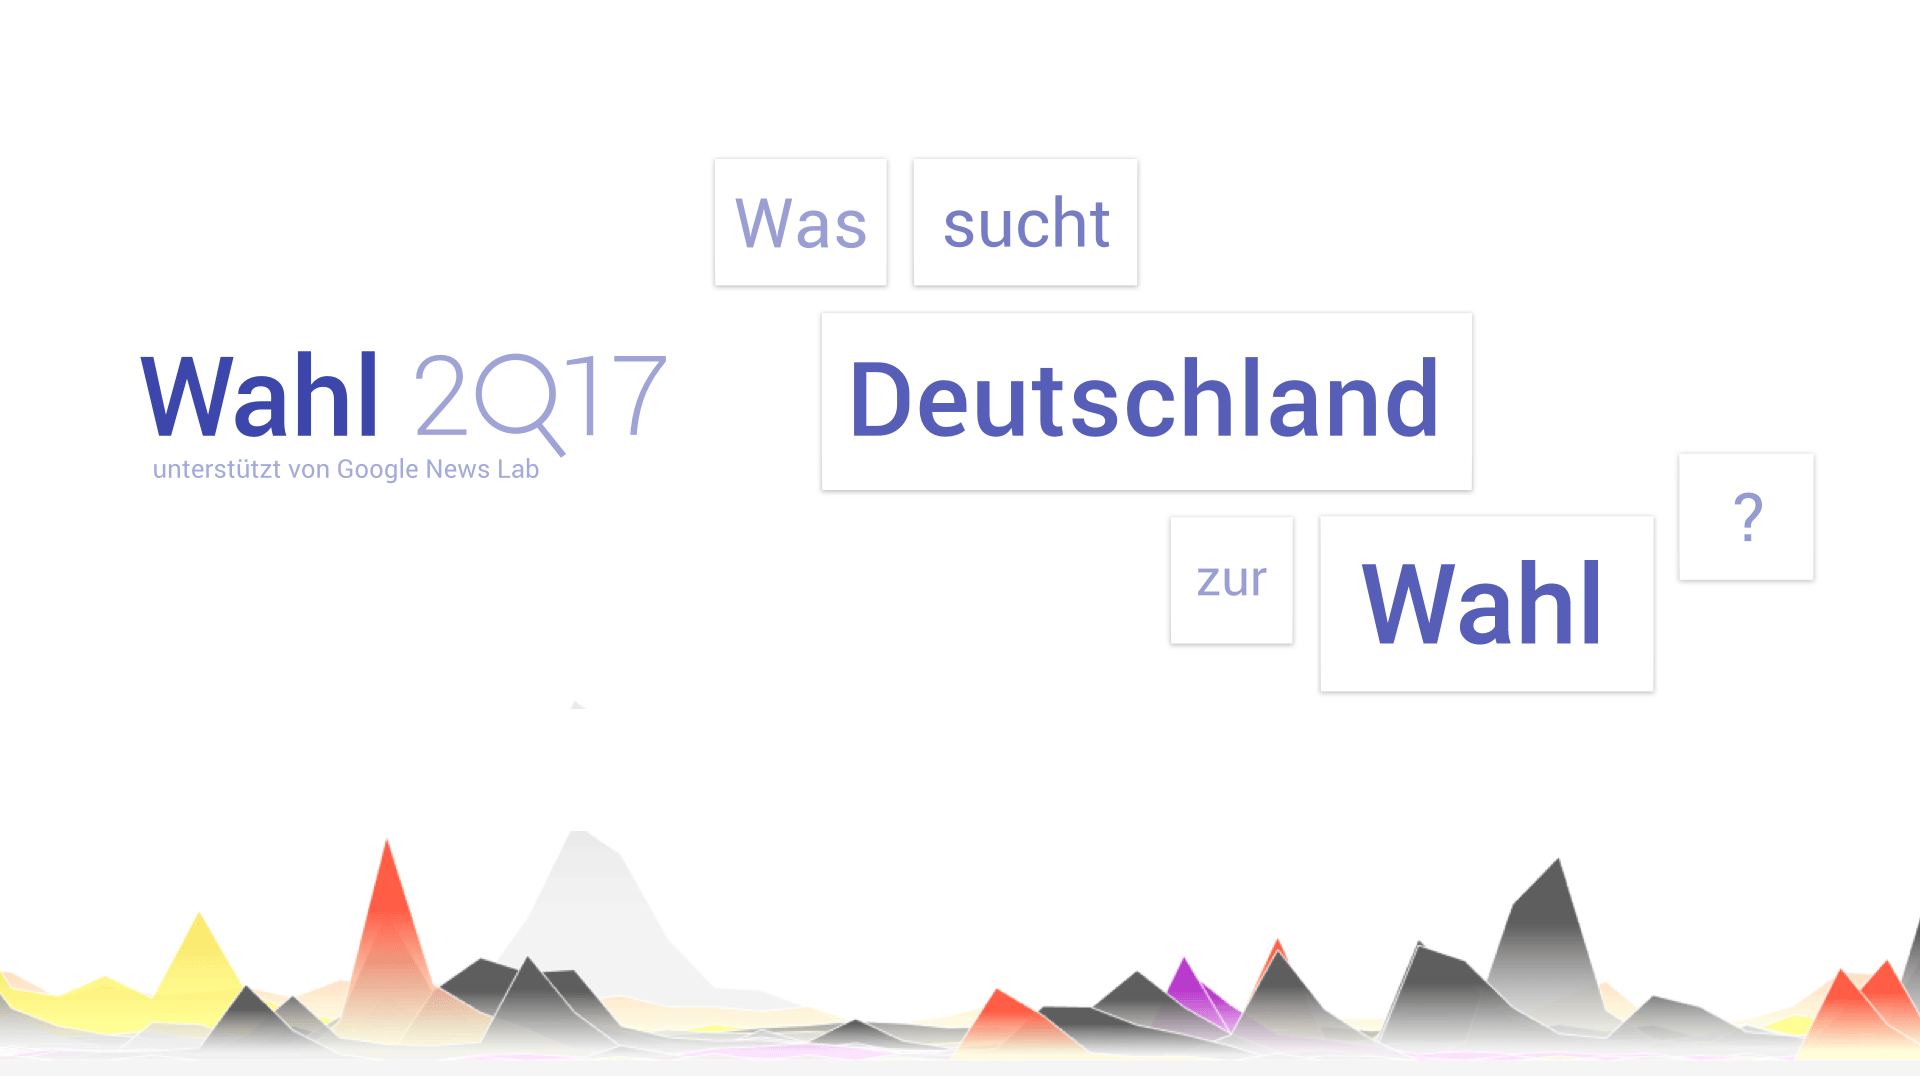 Truth & Beauty - Wahl 2Q17